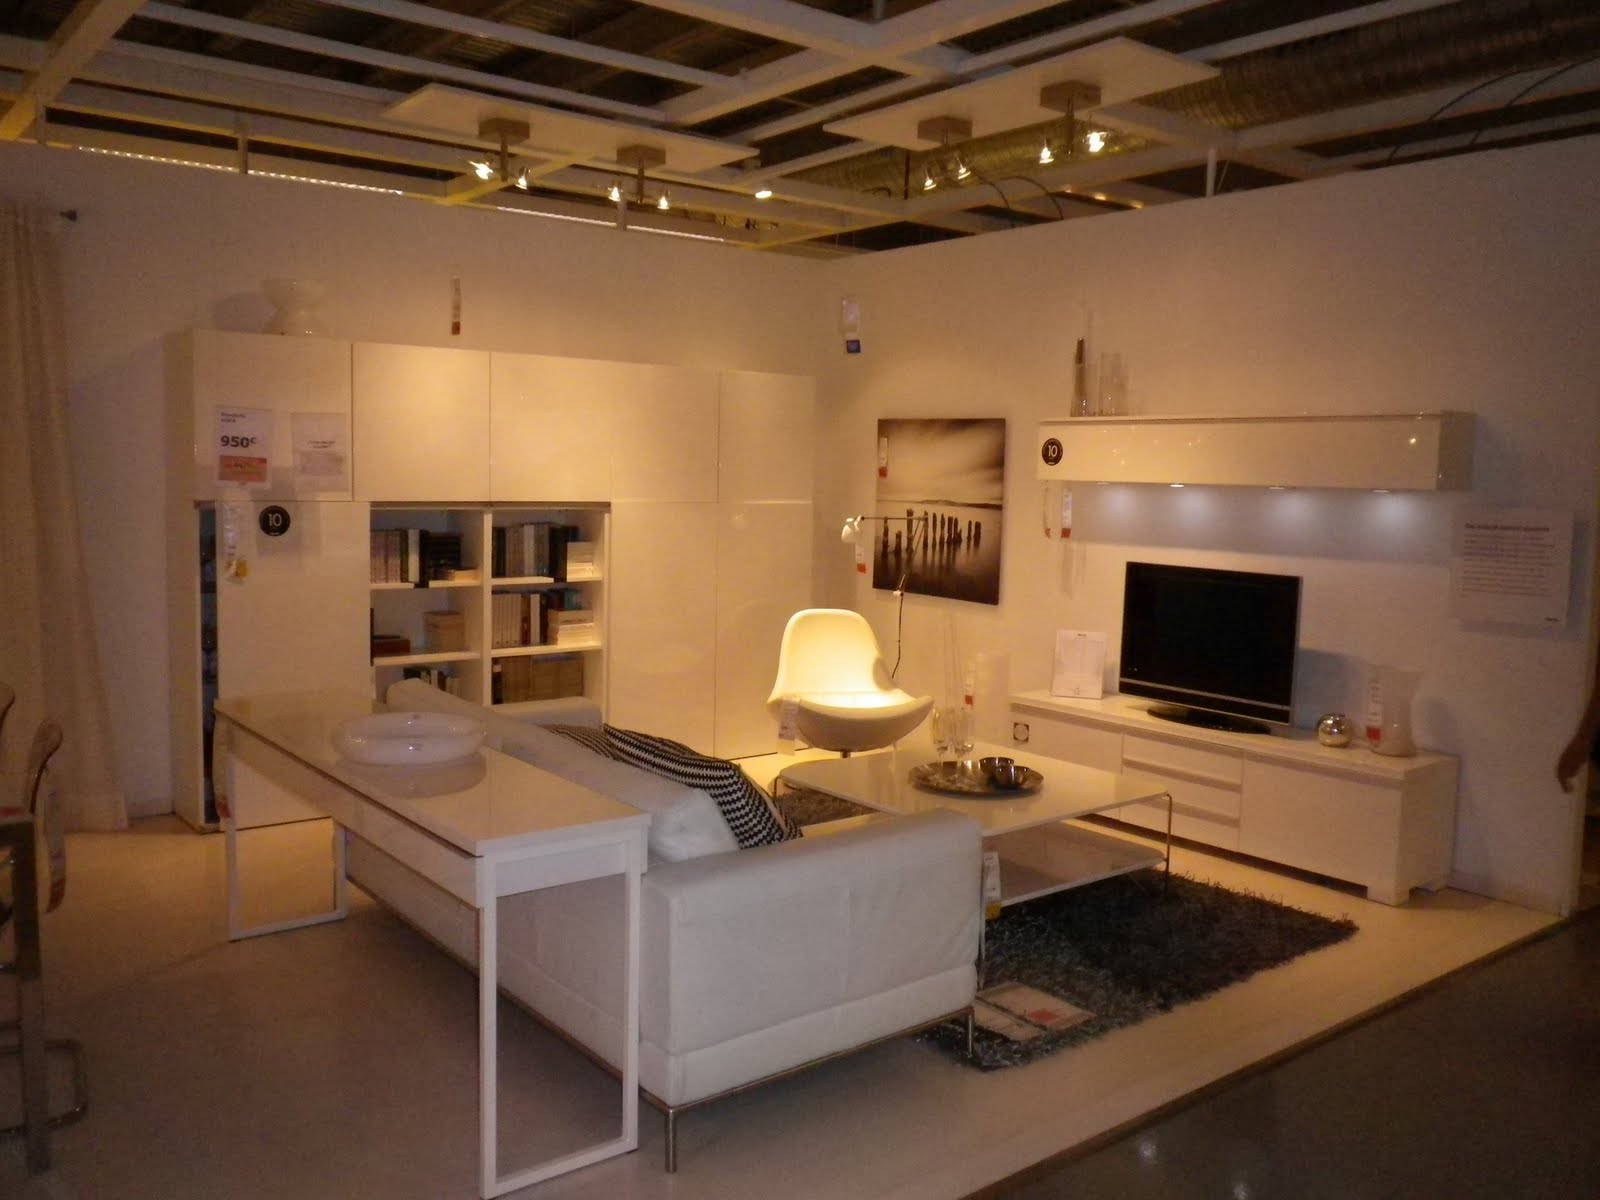 Ikea salon besta sammlung von design for Habillage fenetre baie window